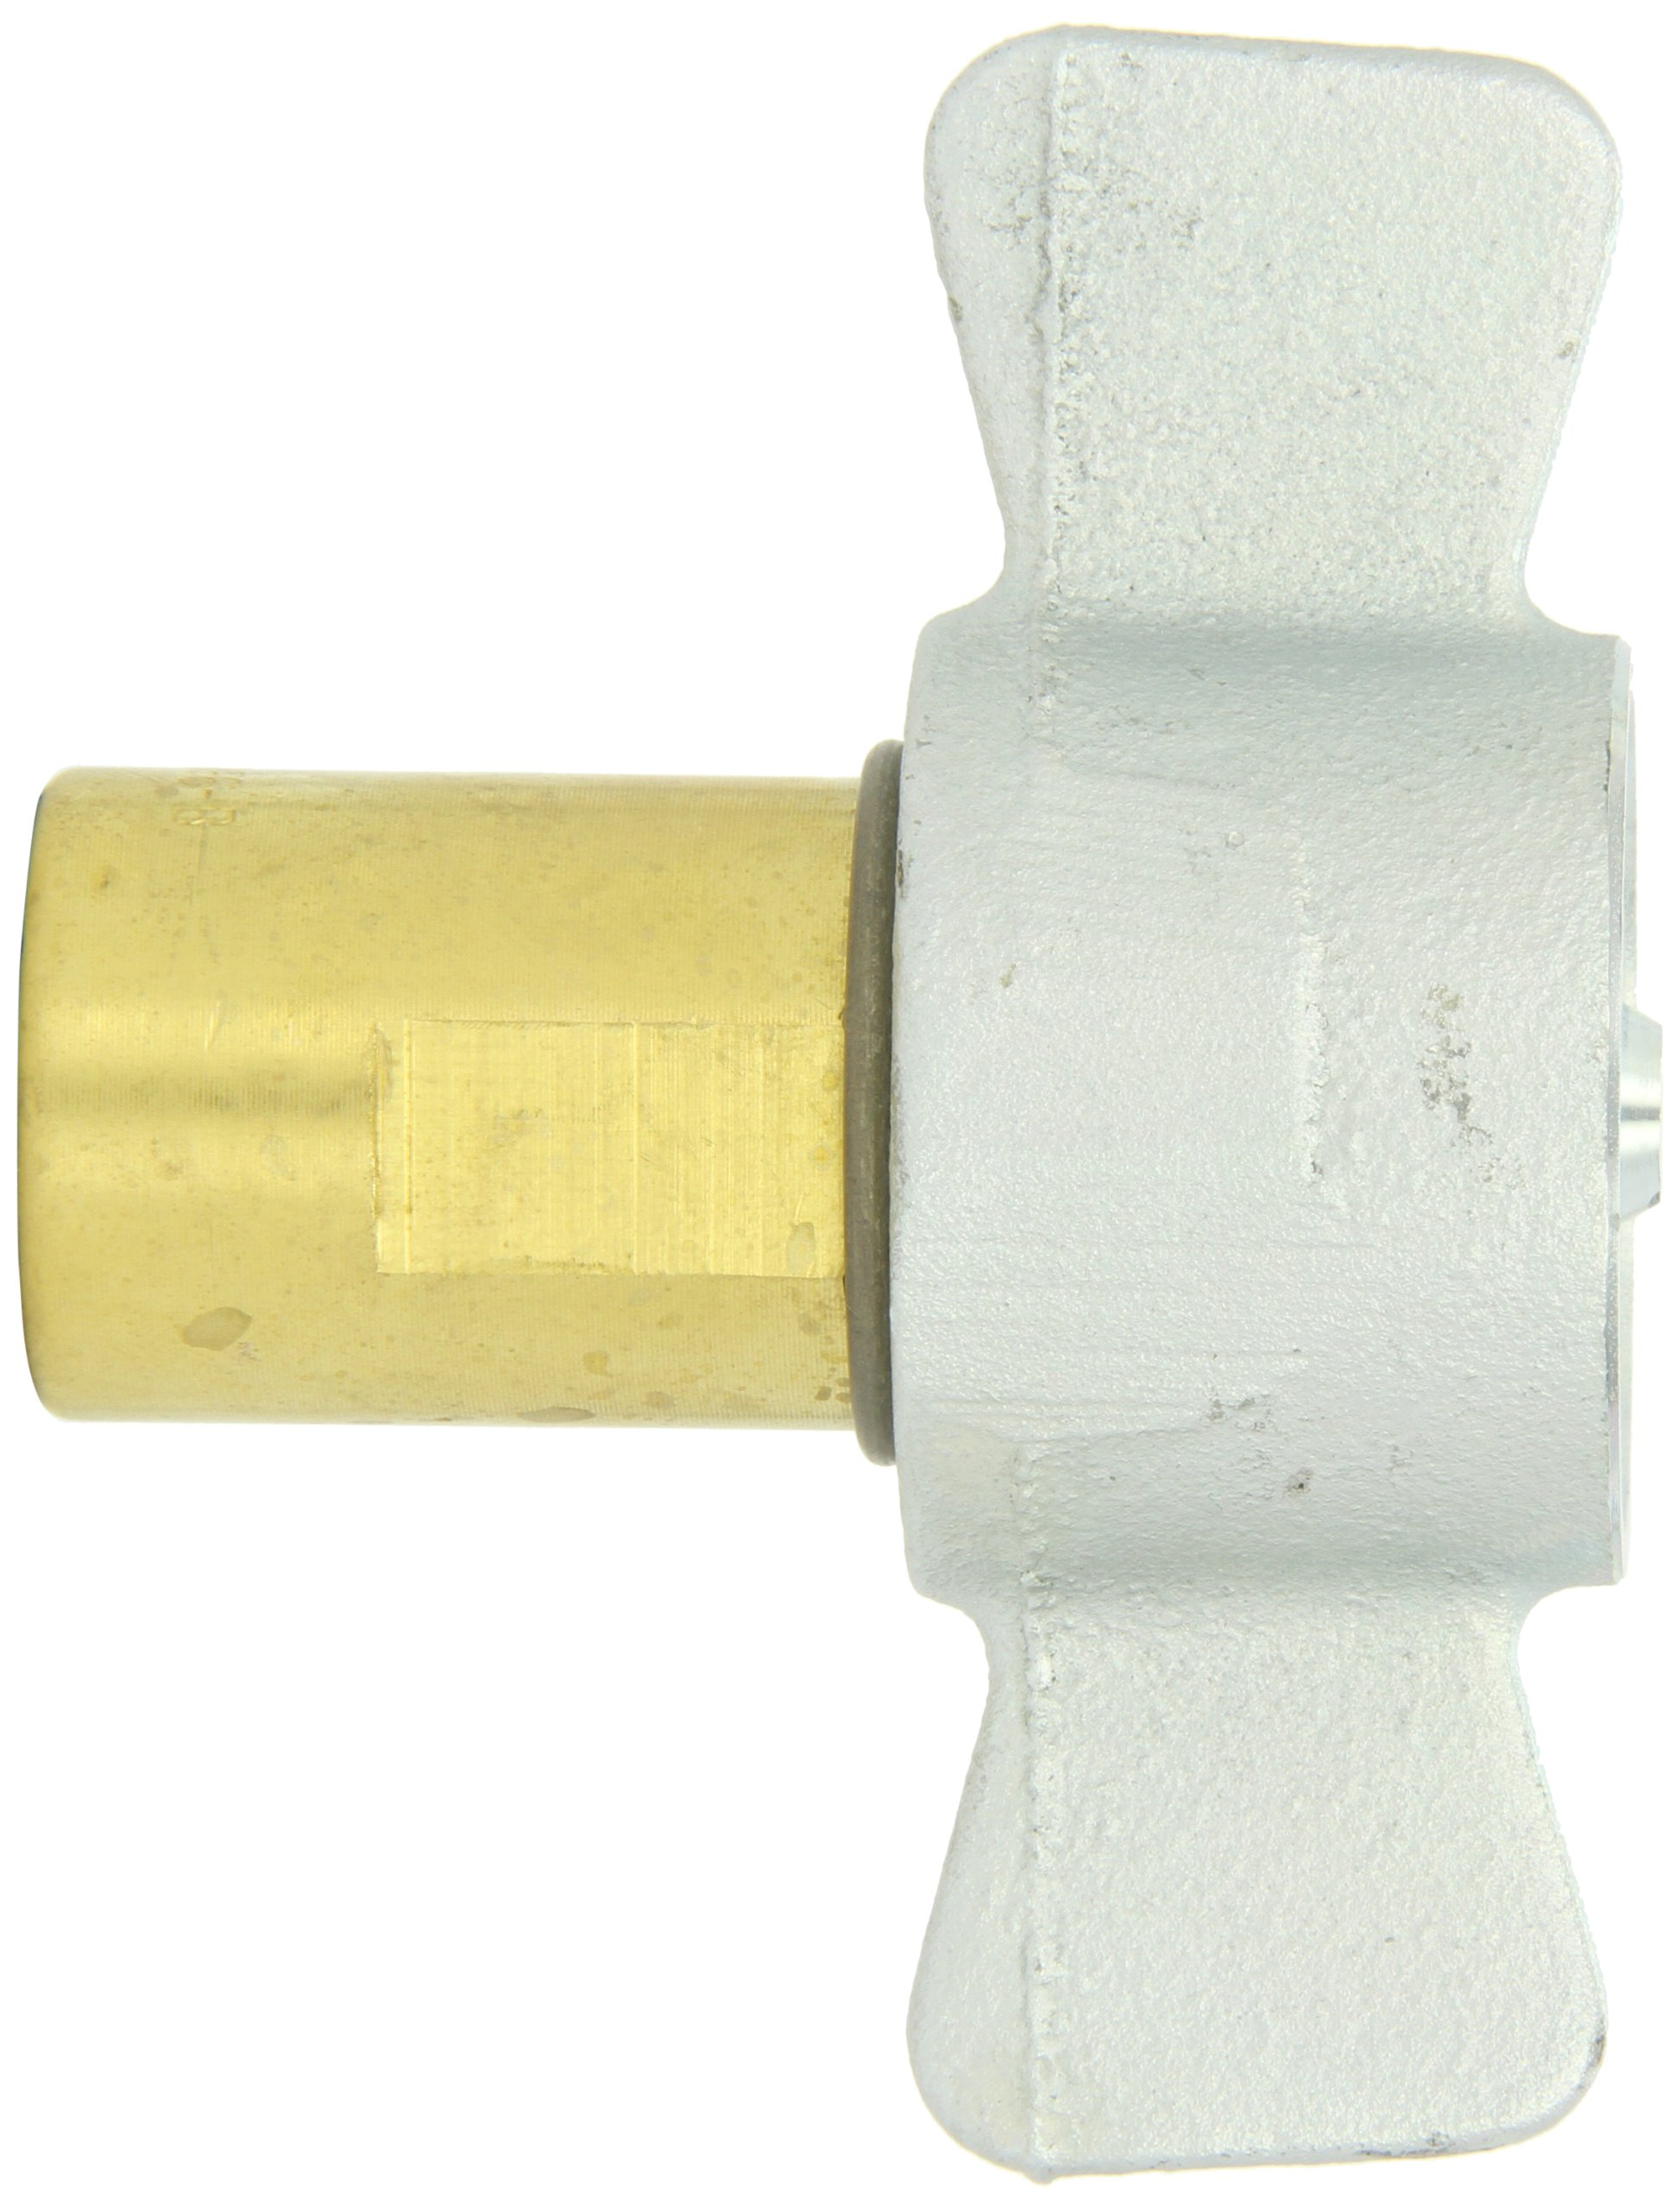 Dixon 78-600 Brass Hydraulic Thread to Connect Fitting, Coupler with Iron Nut, 3/4'' Coupling x 3/4''-14 NPT by Dixon Valve & Coupling (Image #2)